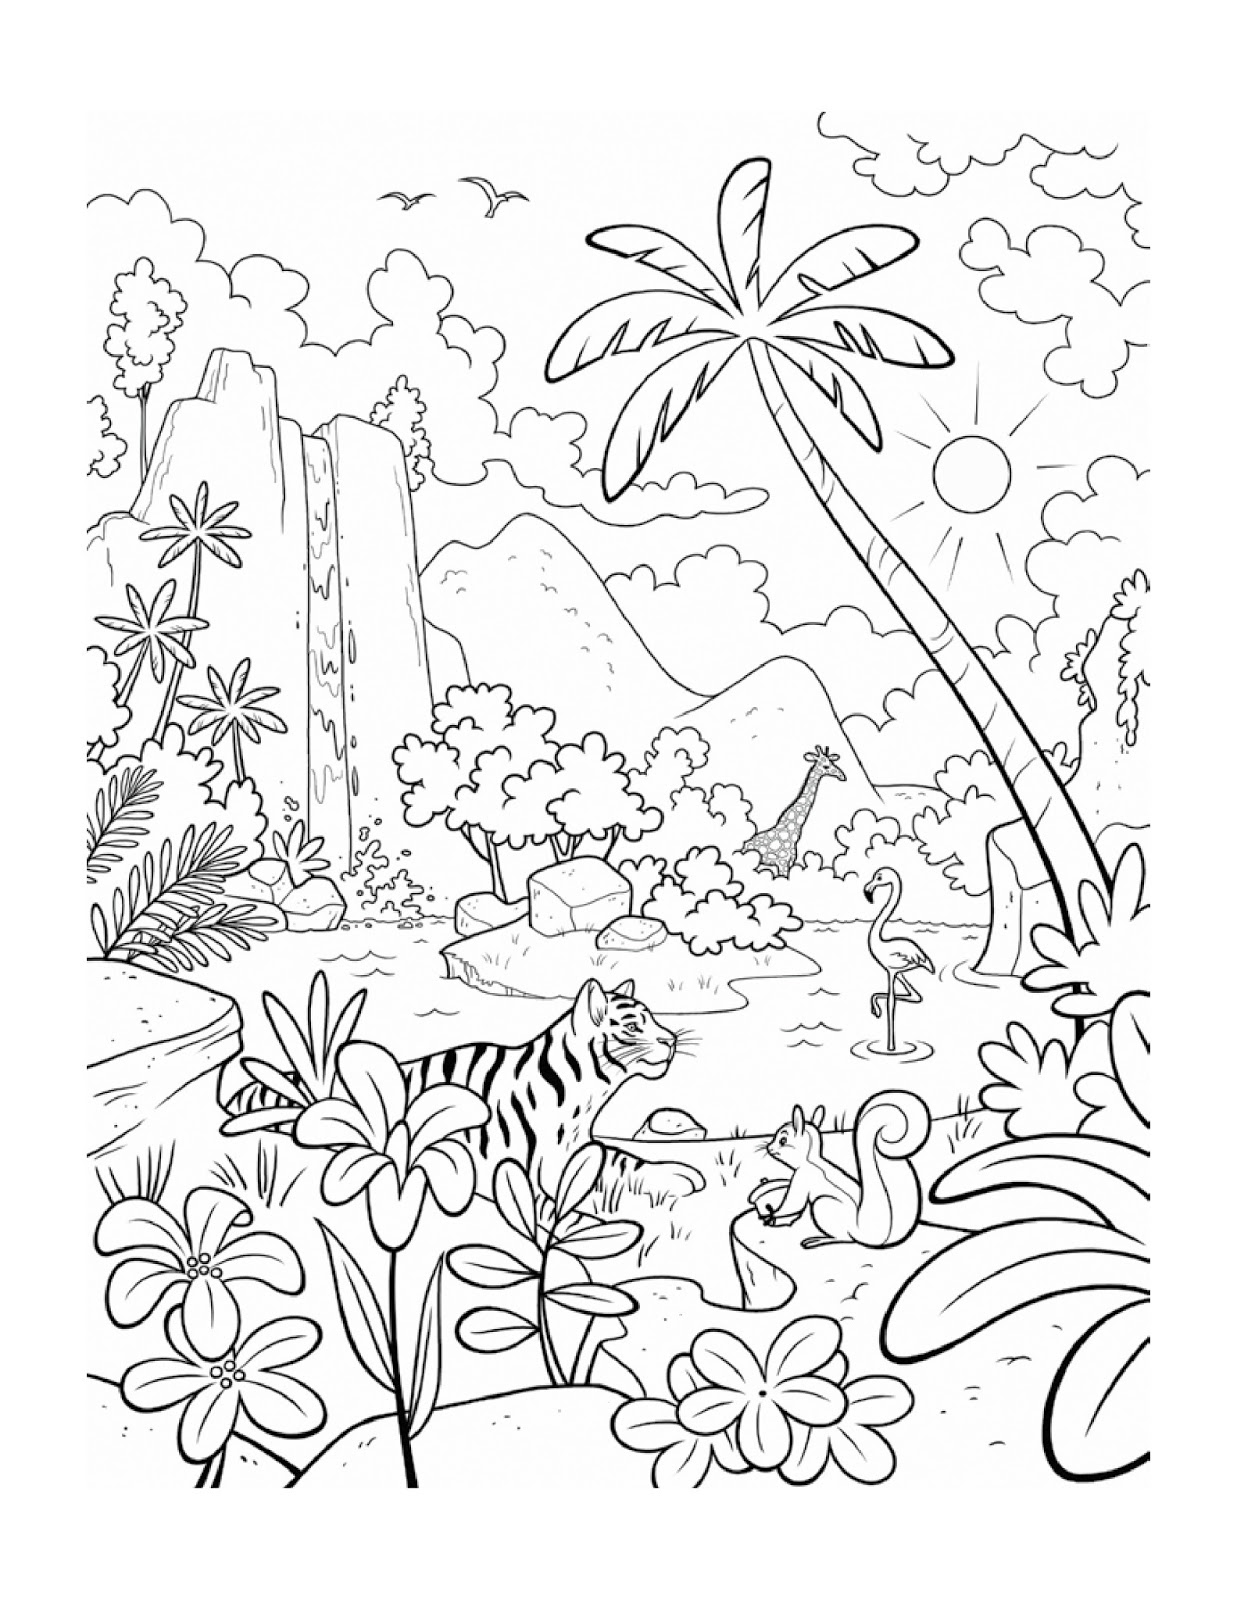 coloring page plants and animals - Drawing And Colouring Pictures For Kids